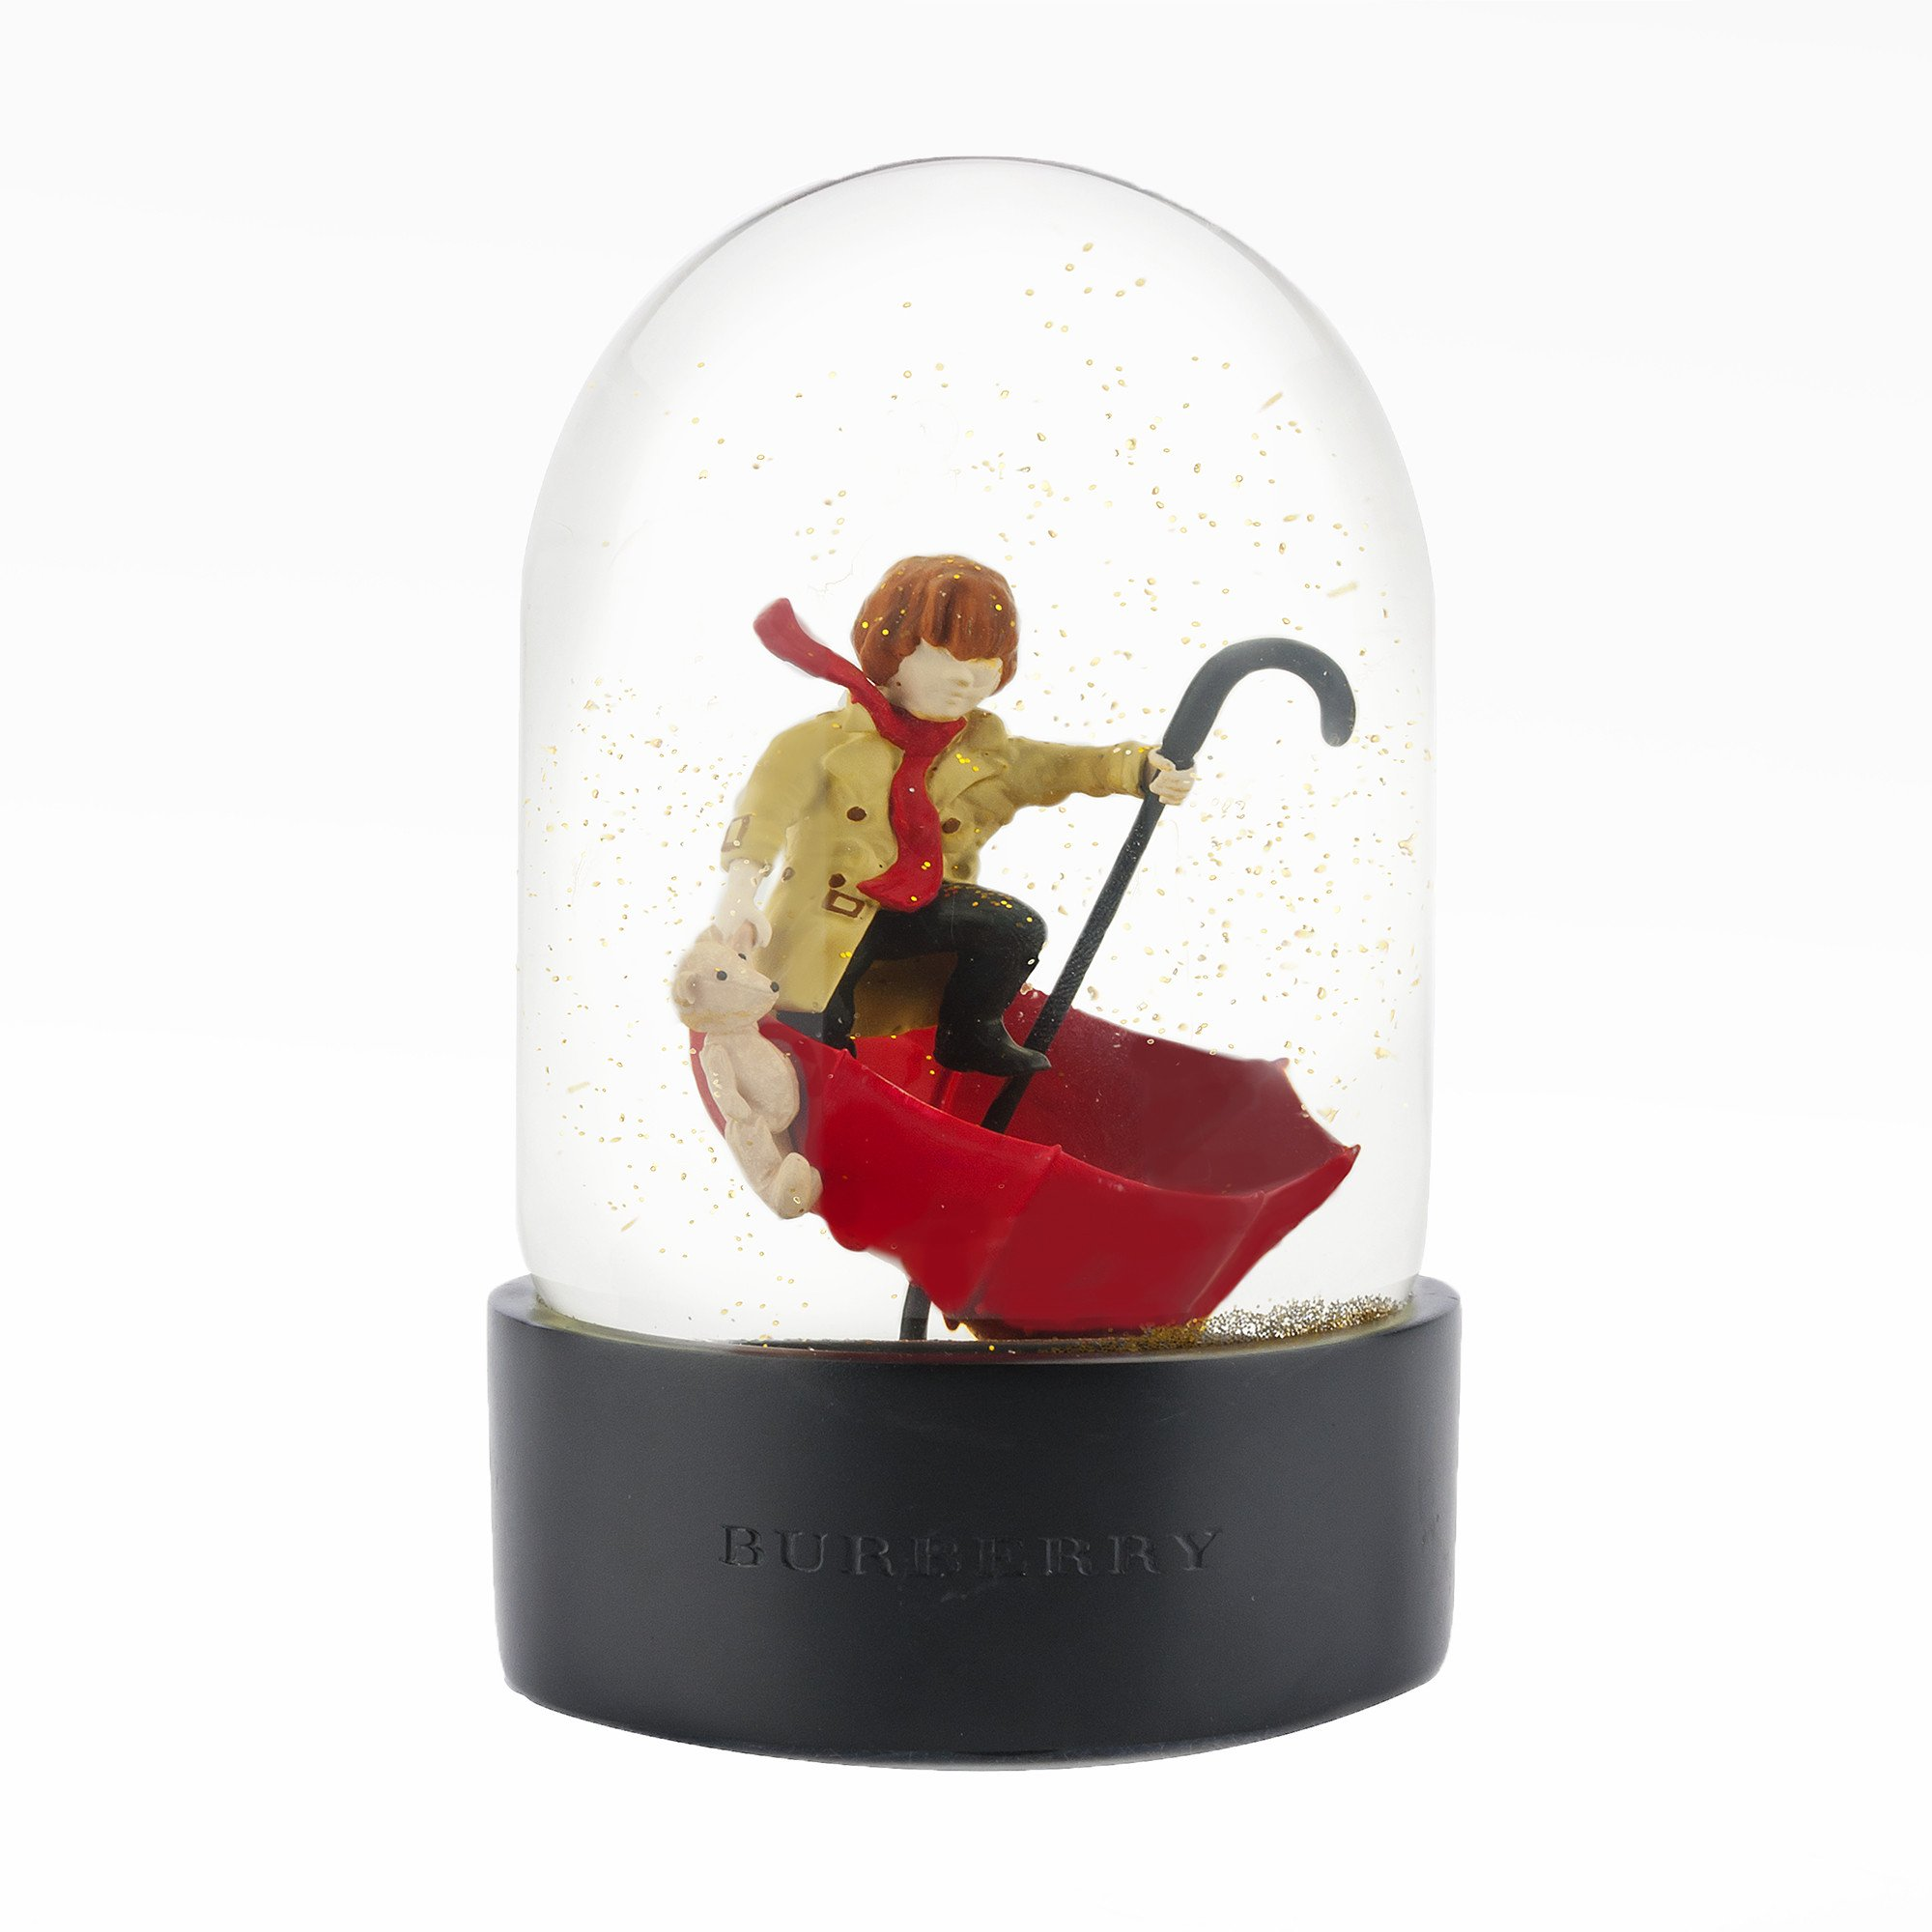 Burberry Snow Globe